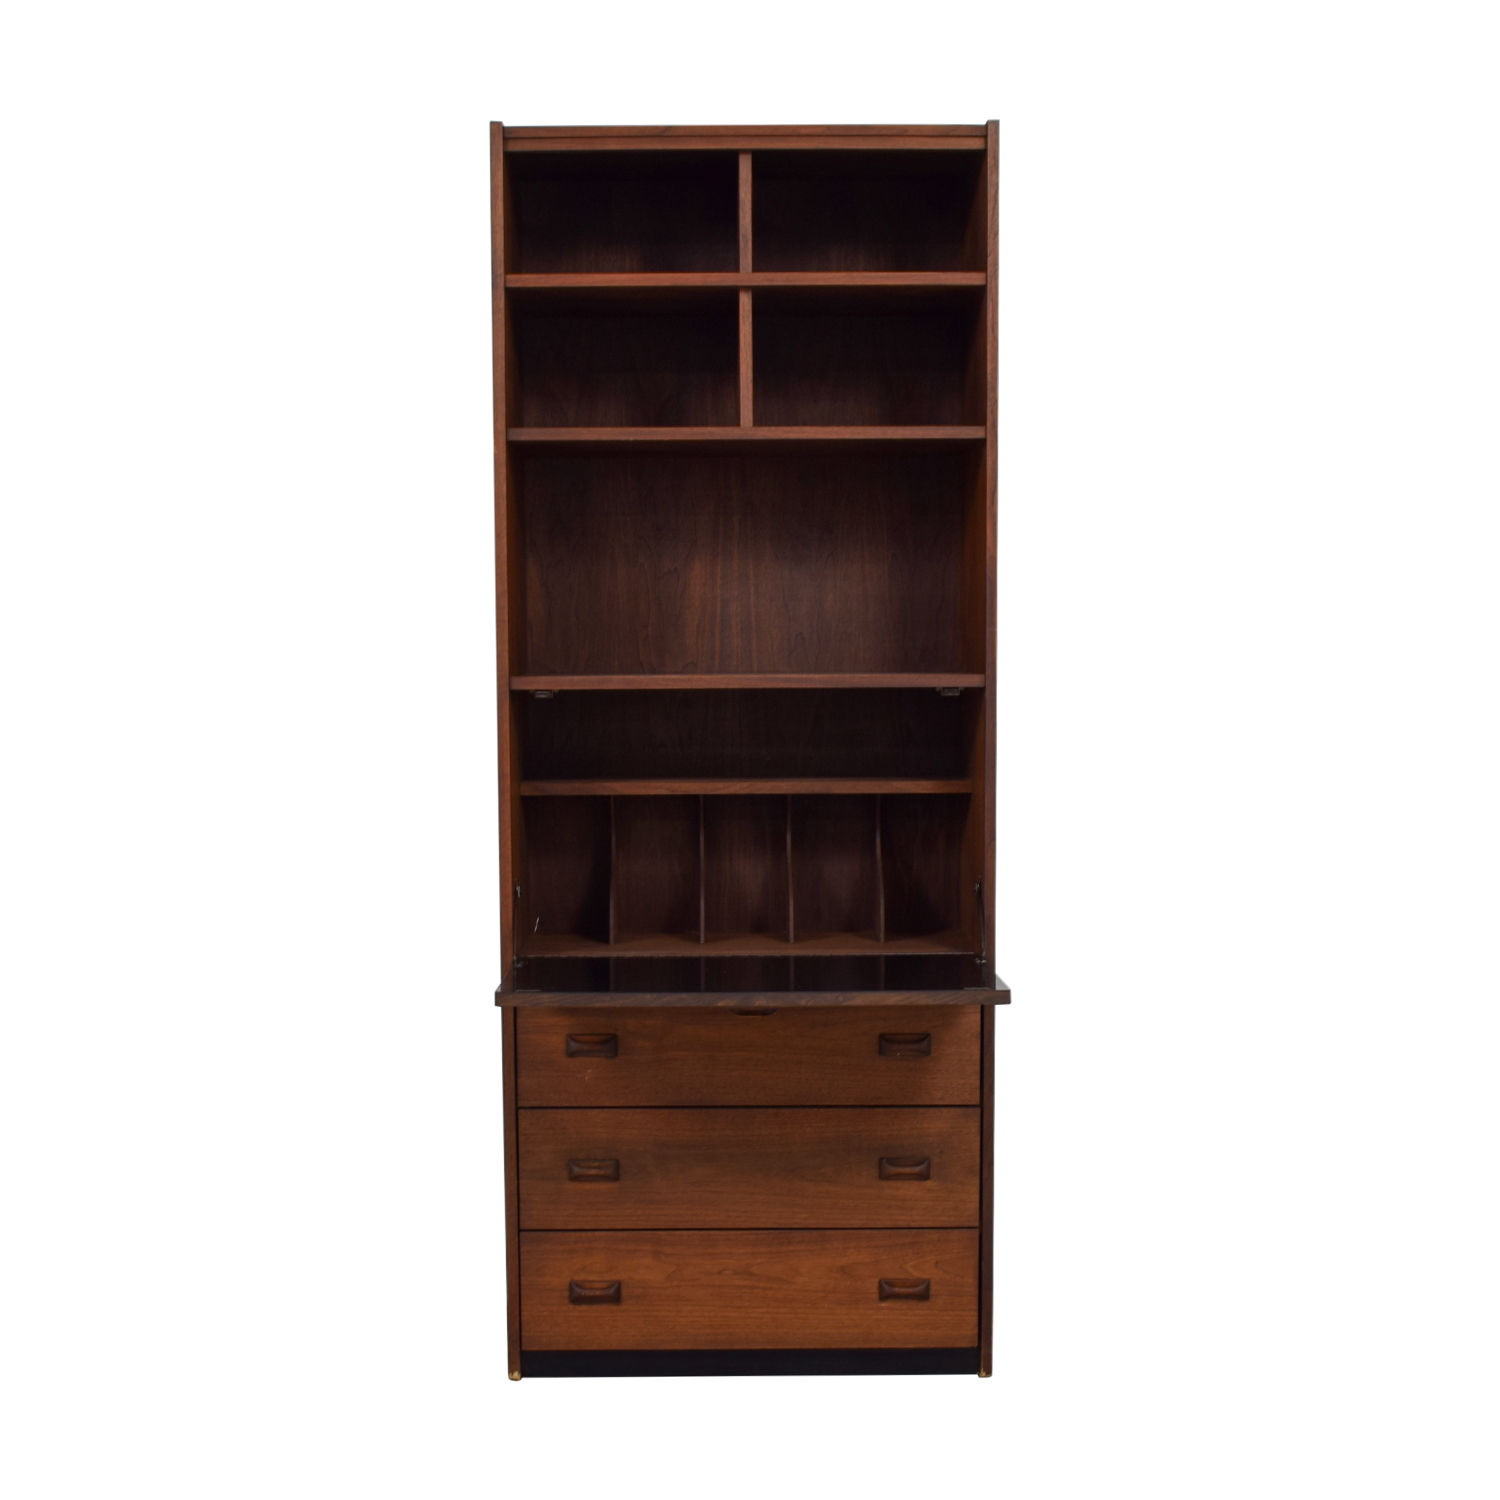 Secretary Bookshelf for sale